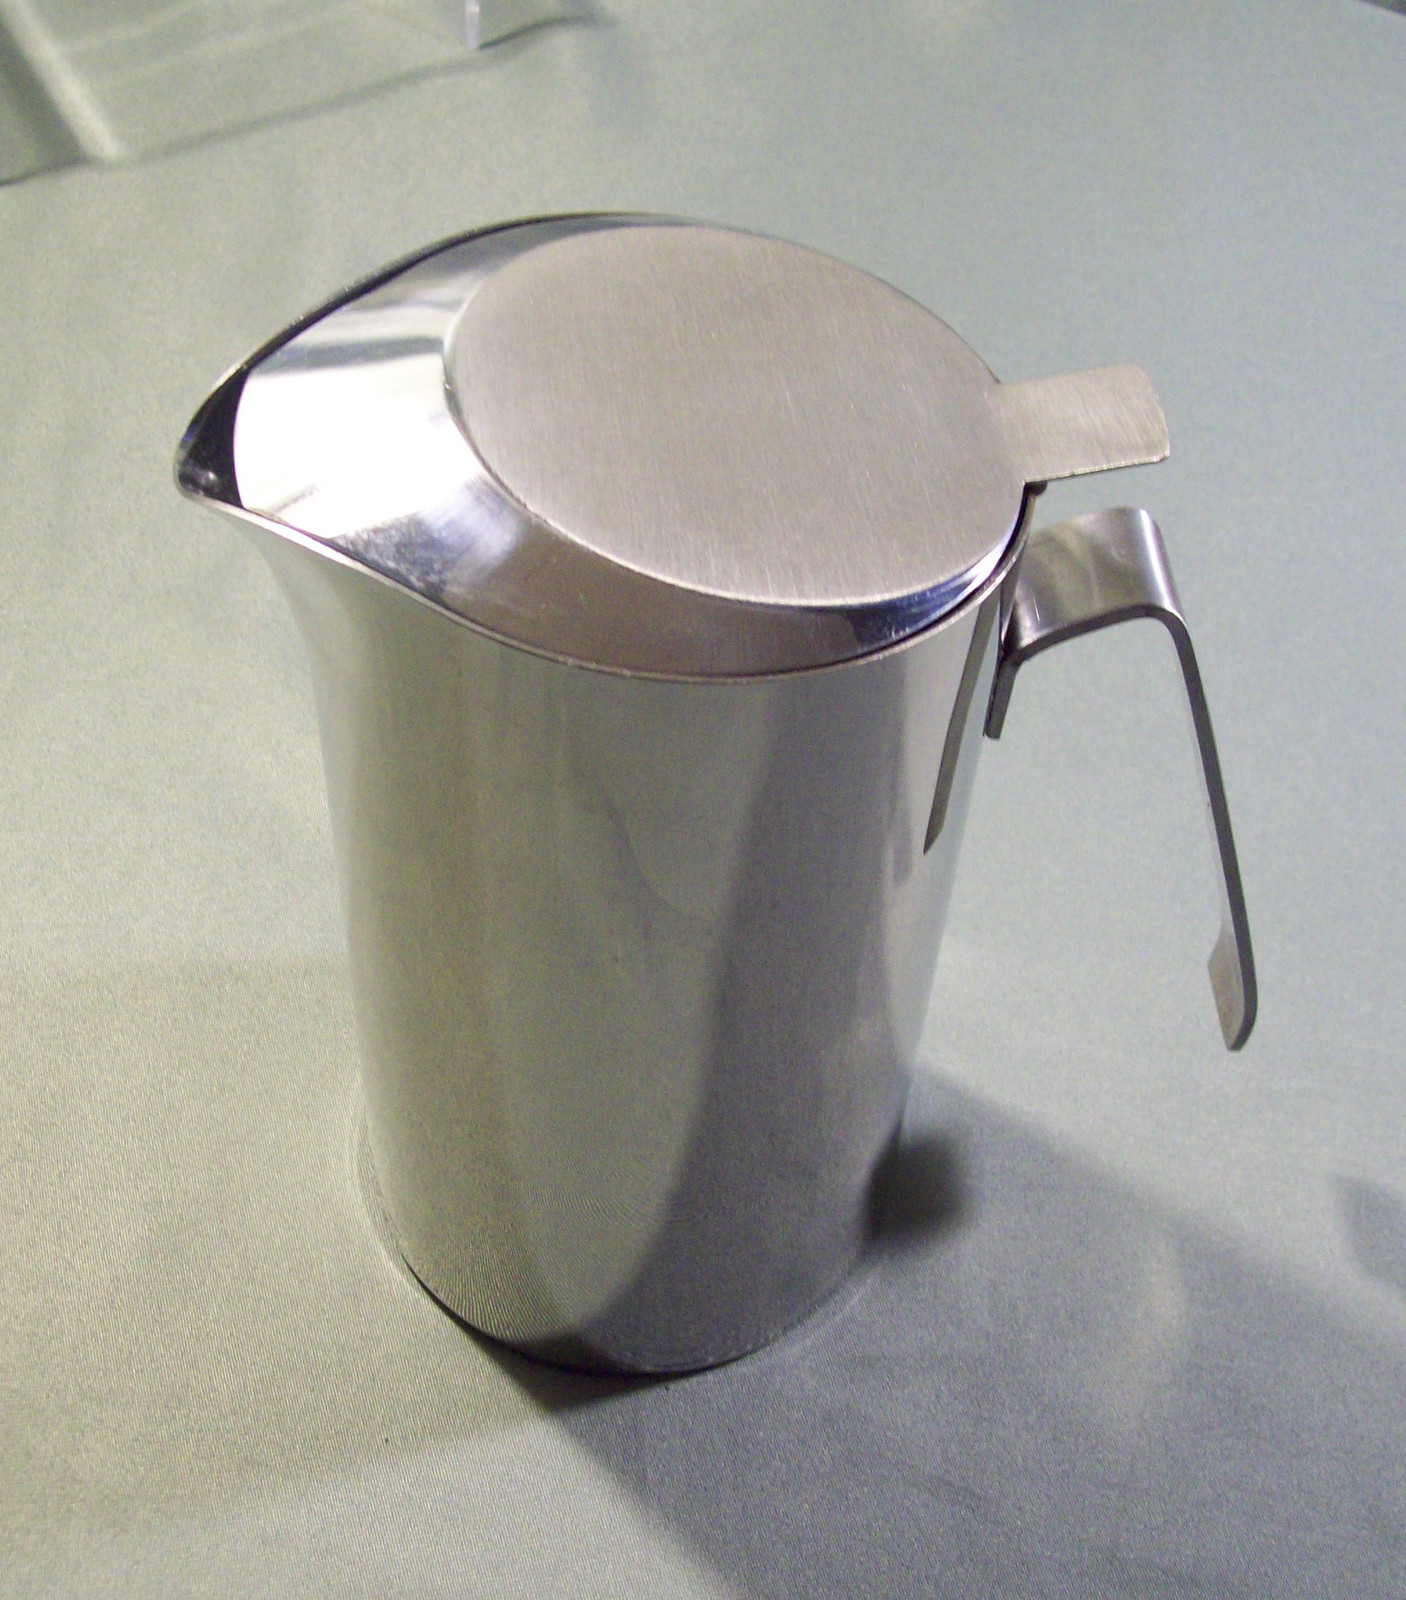 SCARCE PRODOTTI STELLA STAINLESS STEEL COVERED WATER PITCHER - MADE IN ITALY